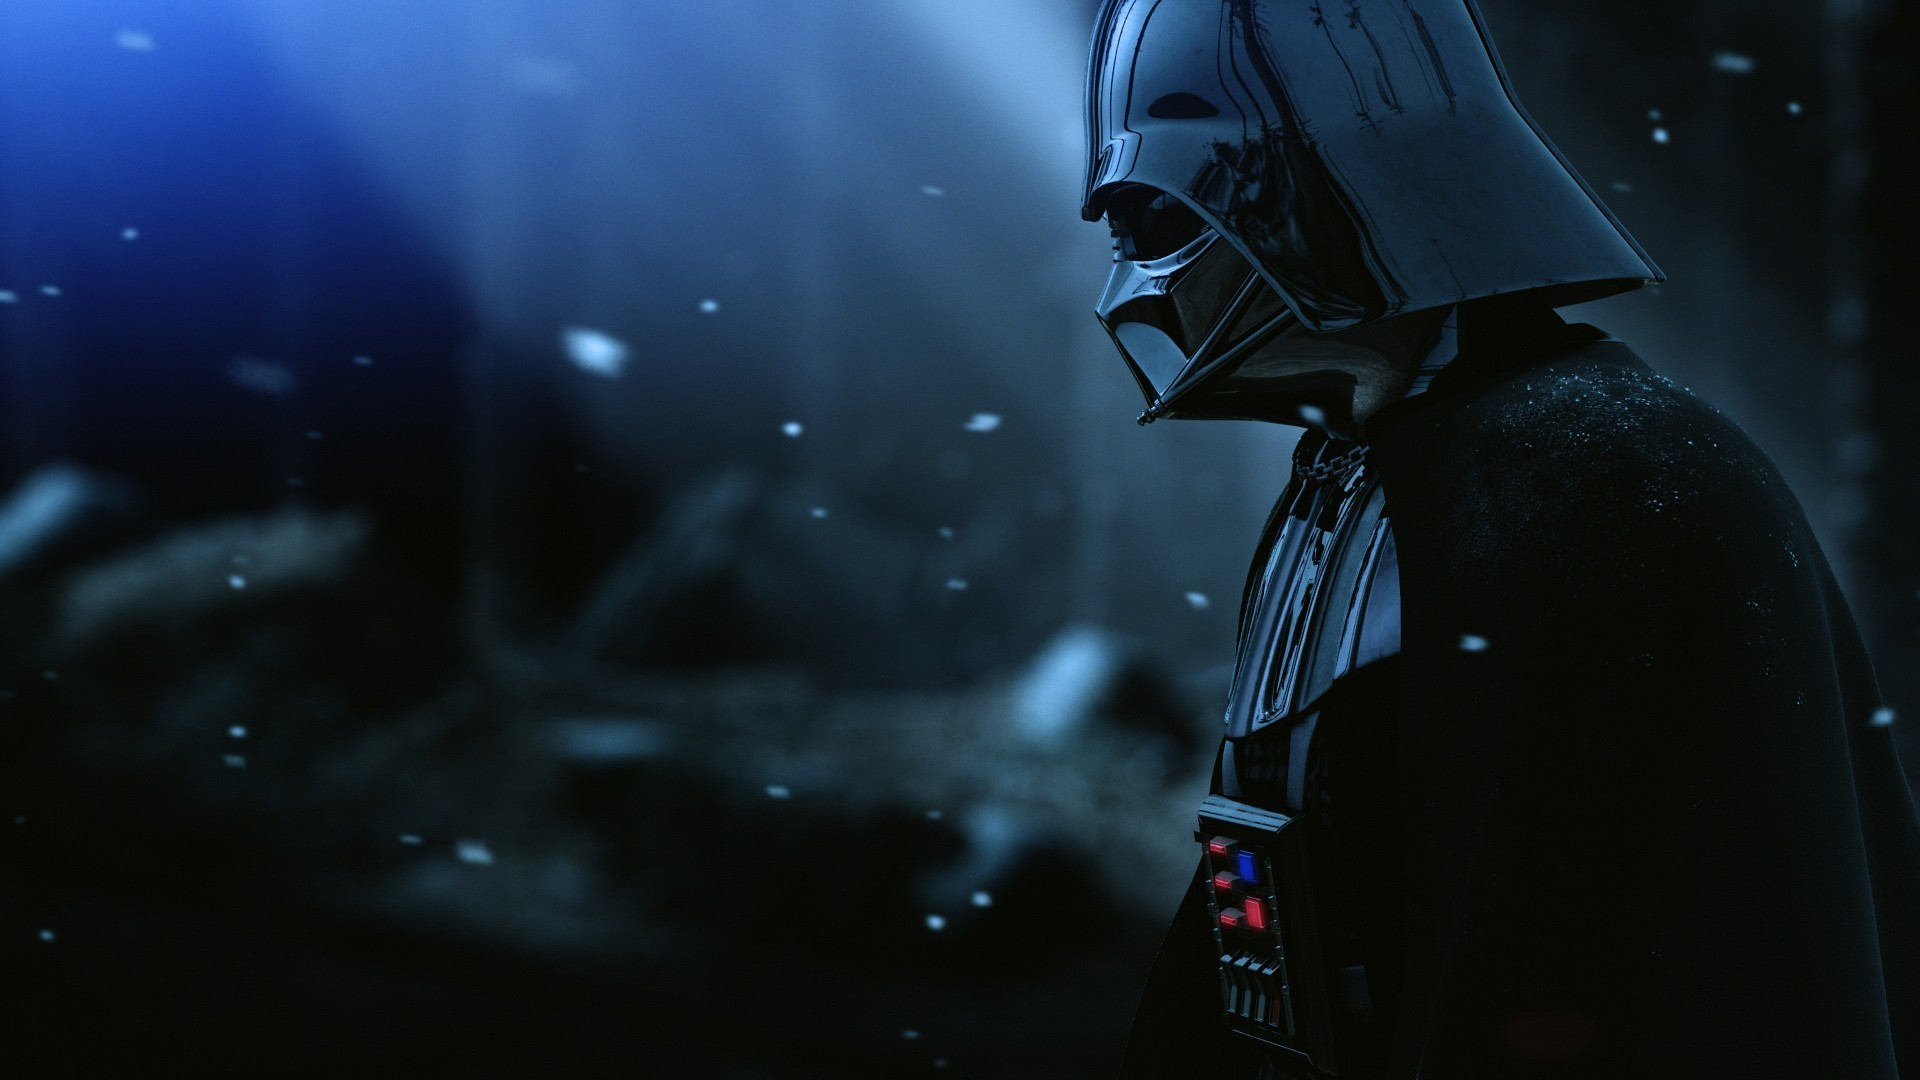 1920x1080 Darth Vader Star Wars Snow Game Background hd wallpaper by chococruise